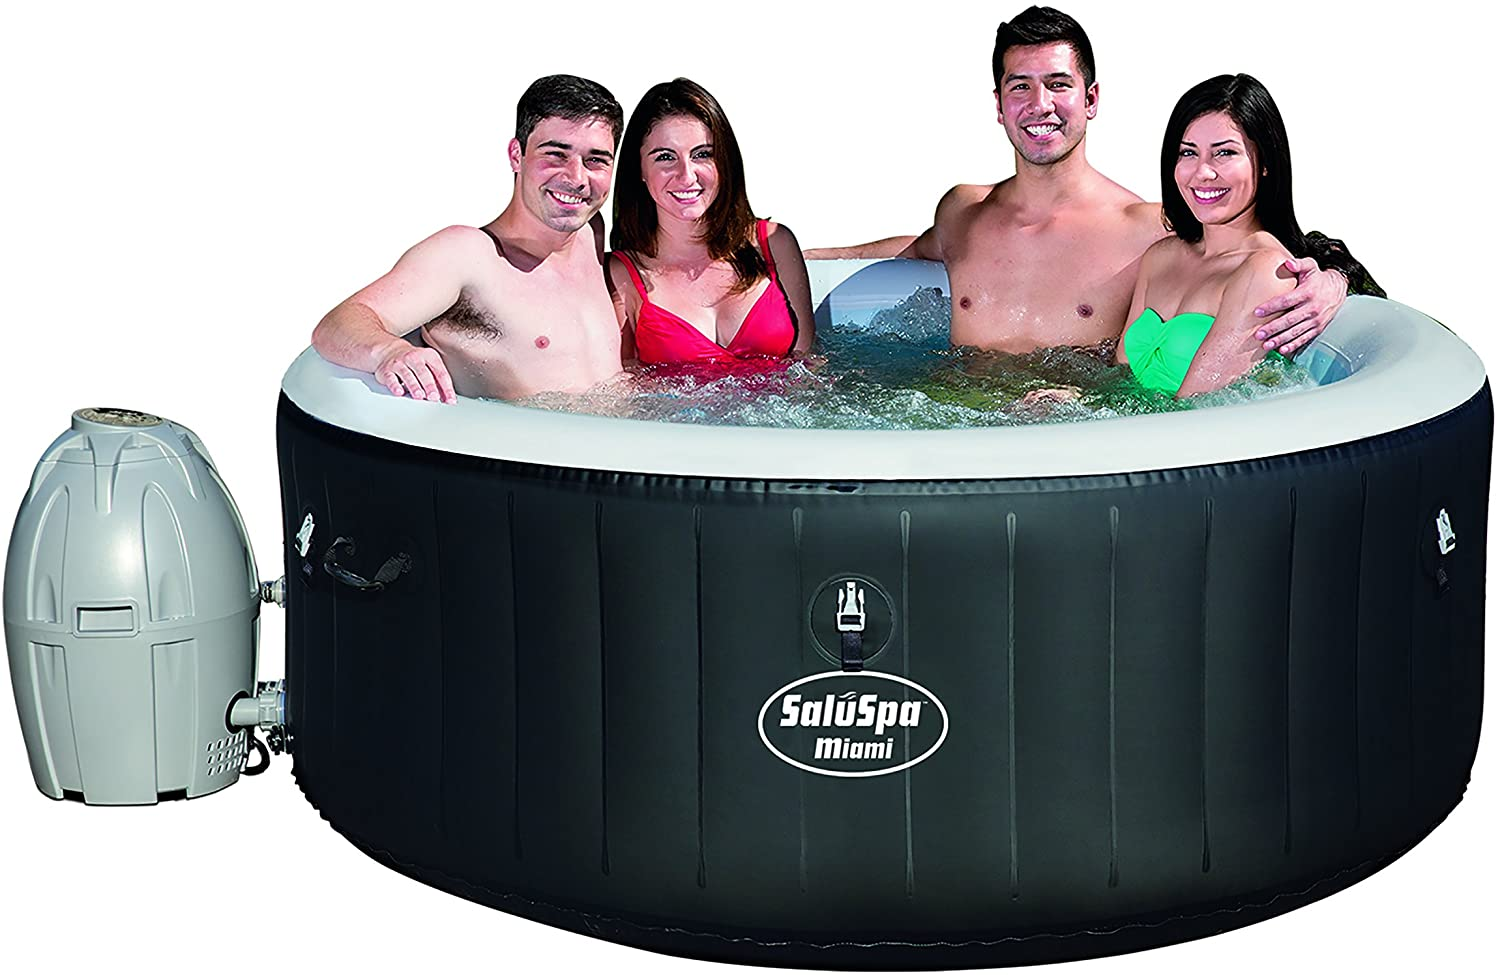 Review of Bestway SaluSpa Miami Inflatable Hot Tub, 4-Person AirJet Spa